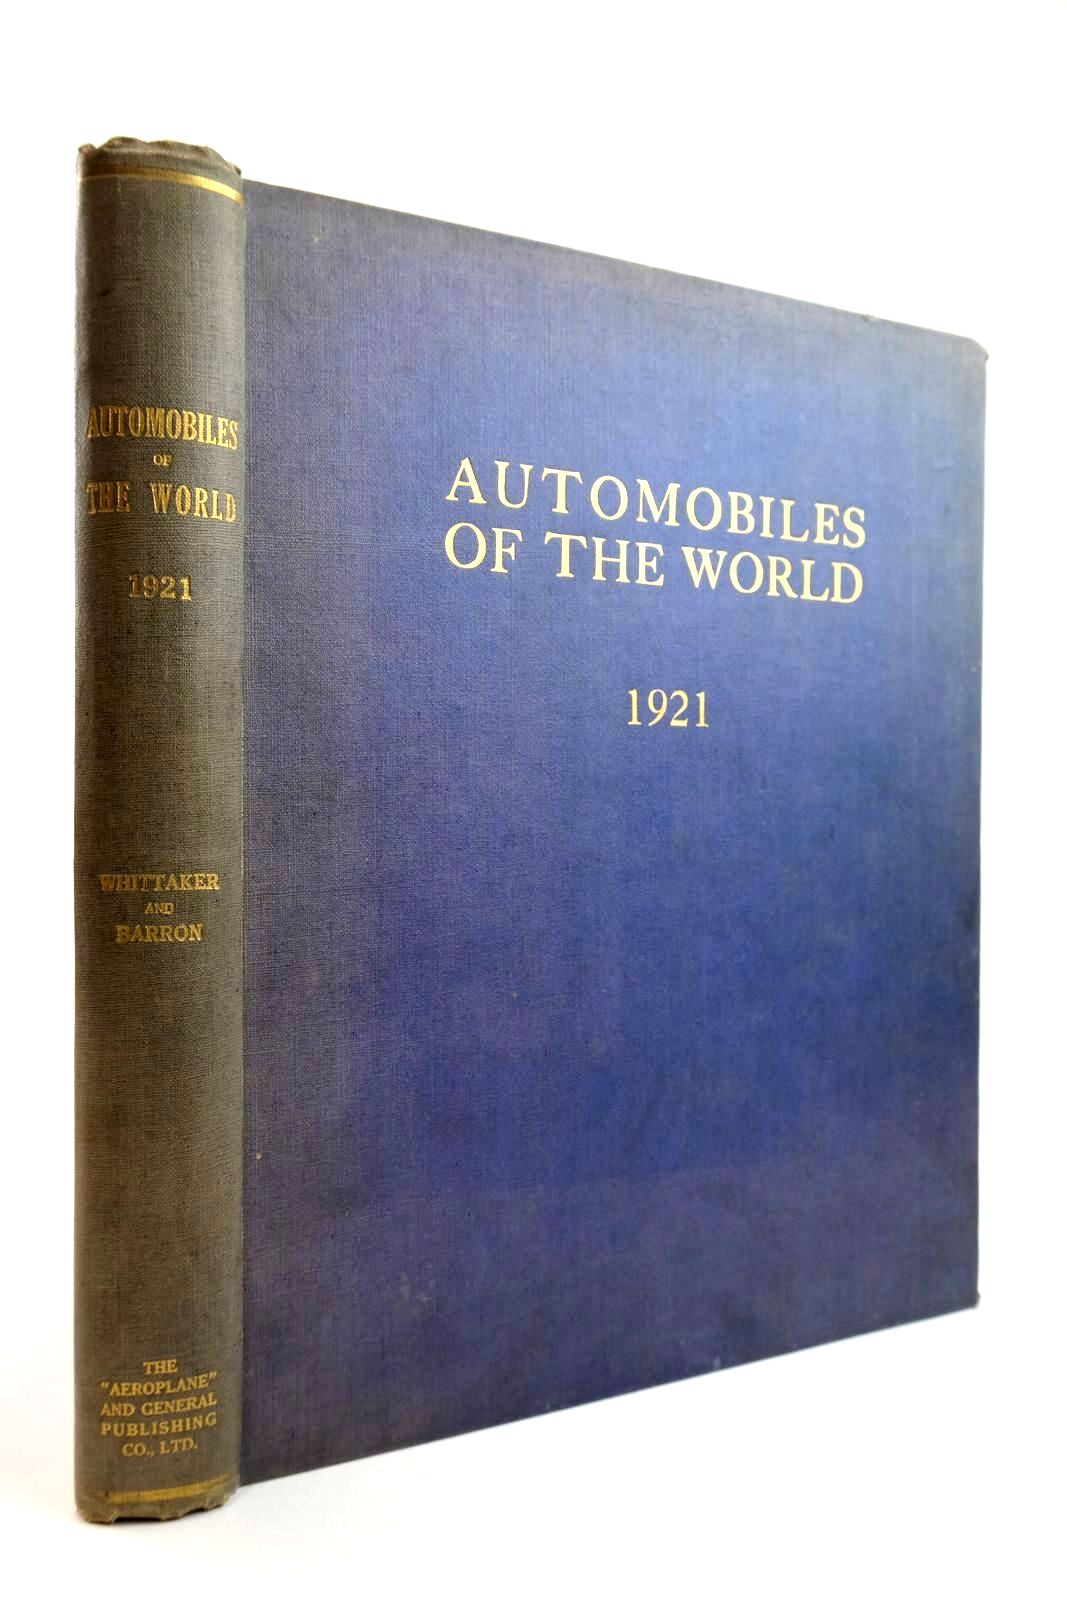 Photo of AUTOMOBILES OF THE WORLD: AN ENCYCLOPAEDIA OF THE CAR 1921 written by De B. Whittaker, W.E. Barron, P.A. published by The Aeroplane And General Publishing Co. Limited (STOCK CODE: 2133936)  for sale by Stella & Rose's Books